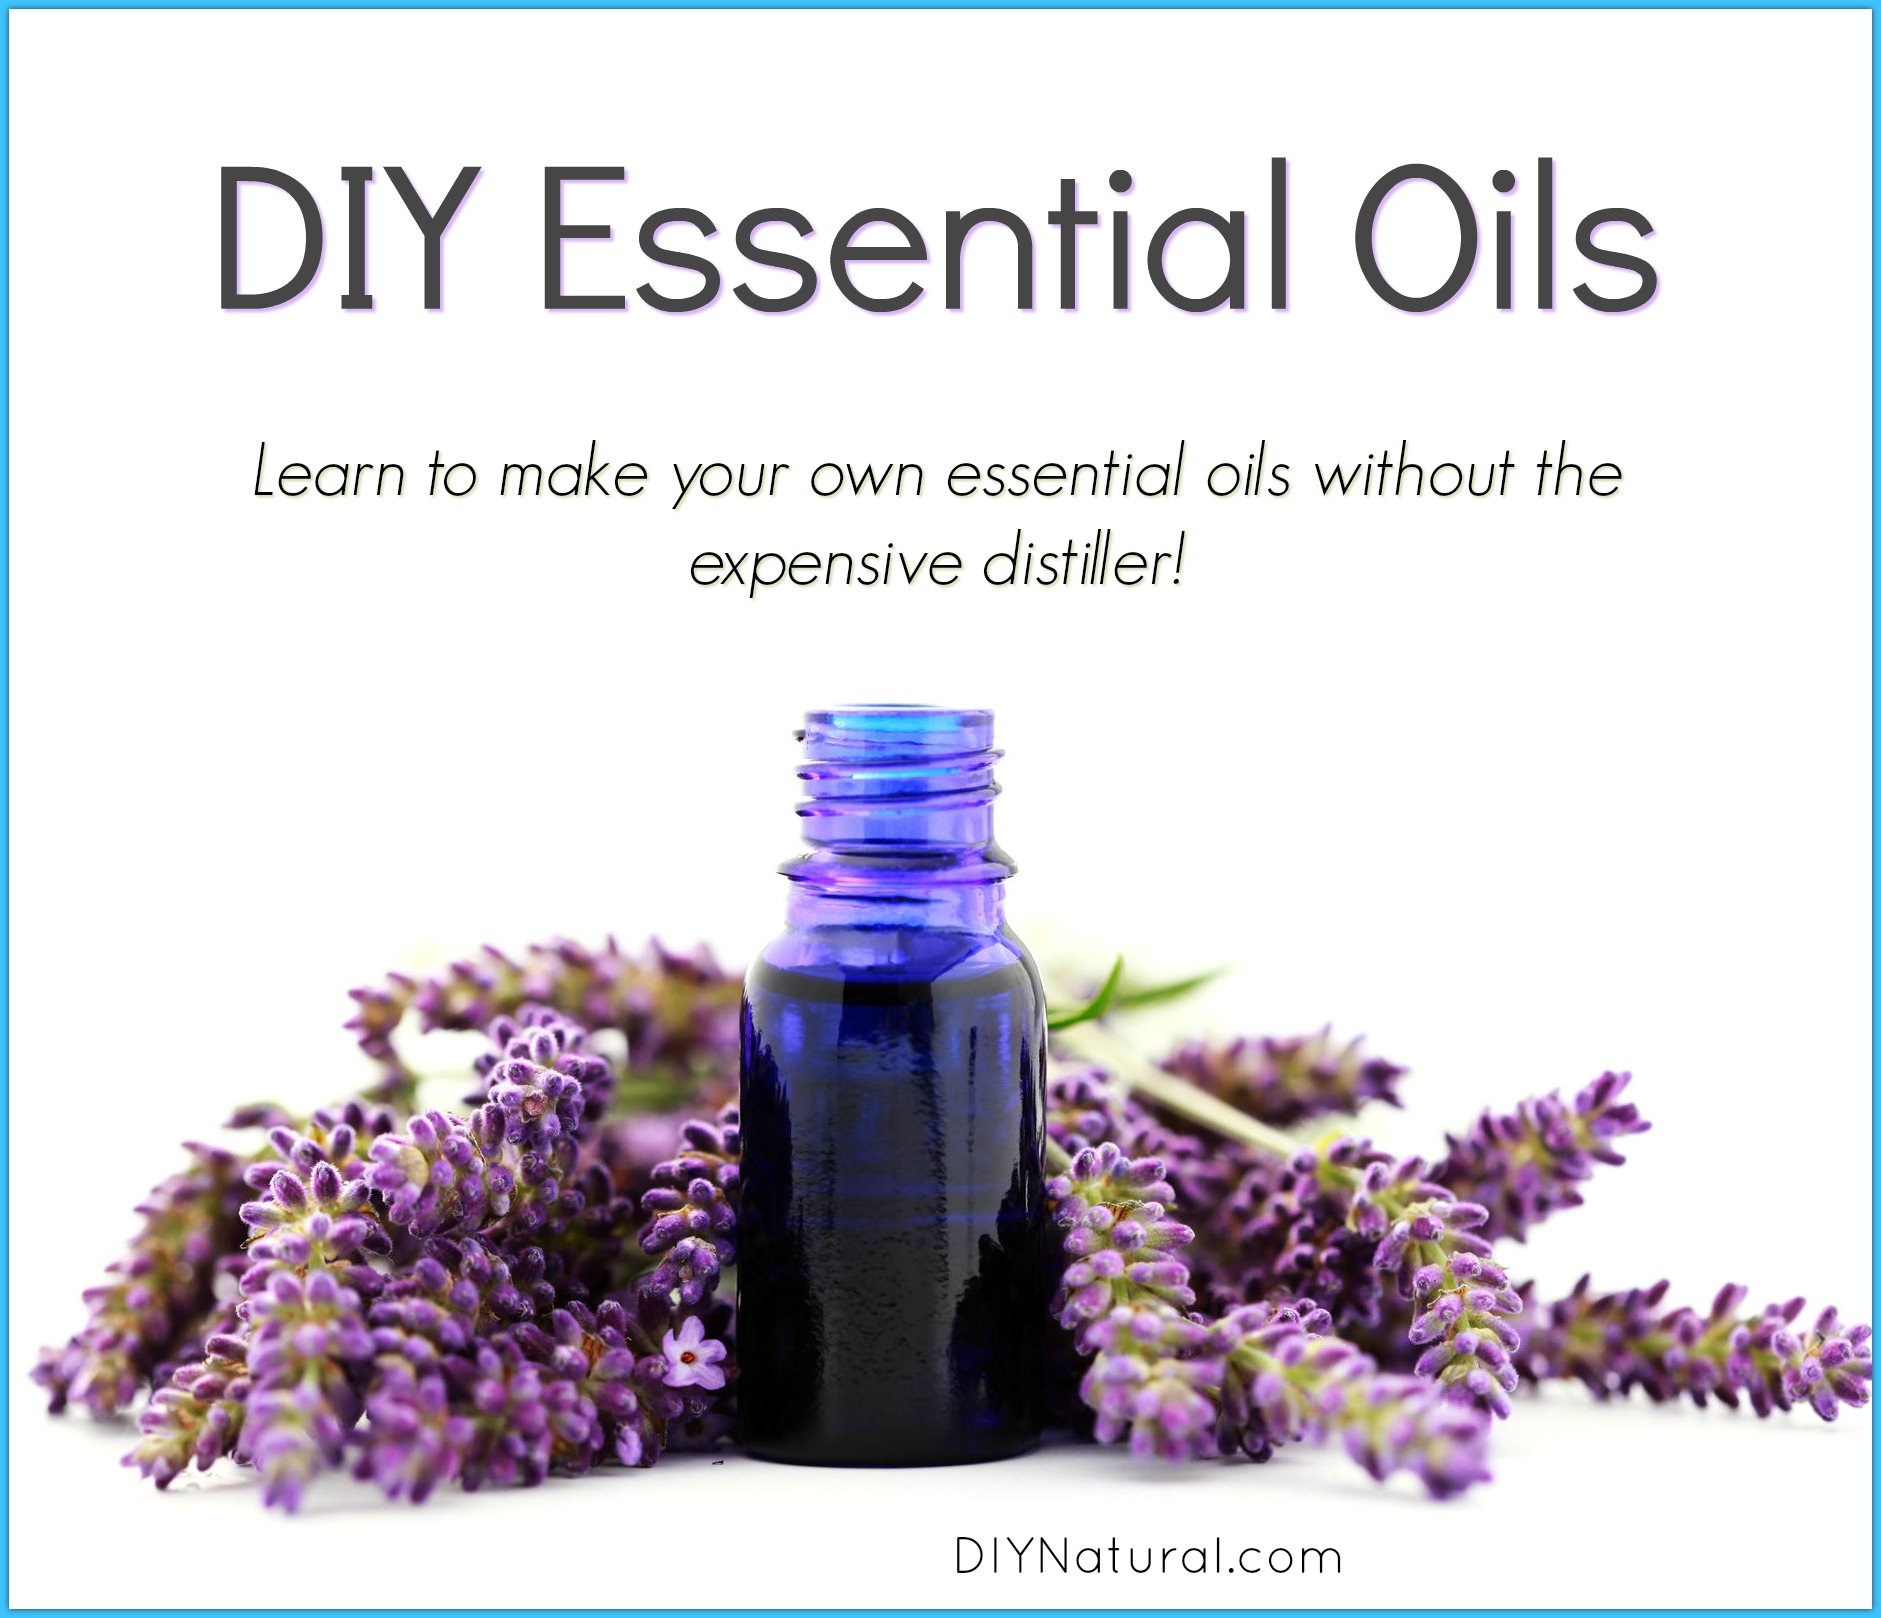 Diy Essential Oils Learn How To Make Your Own Essential Oils